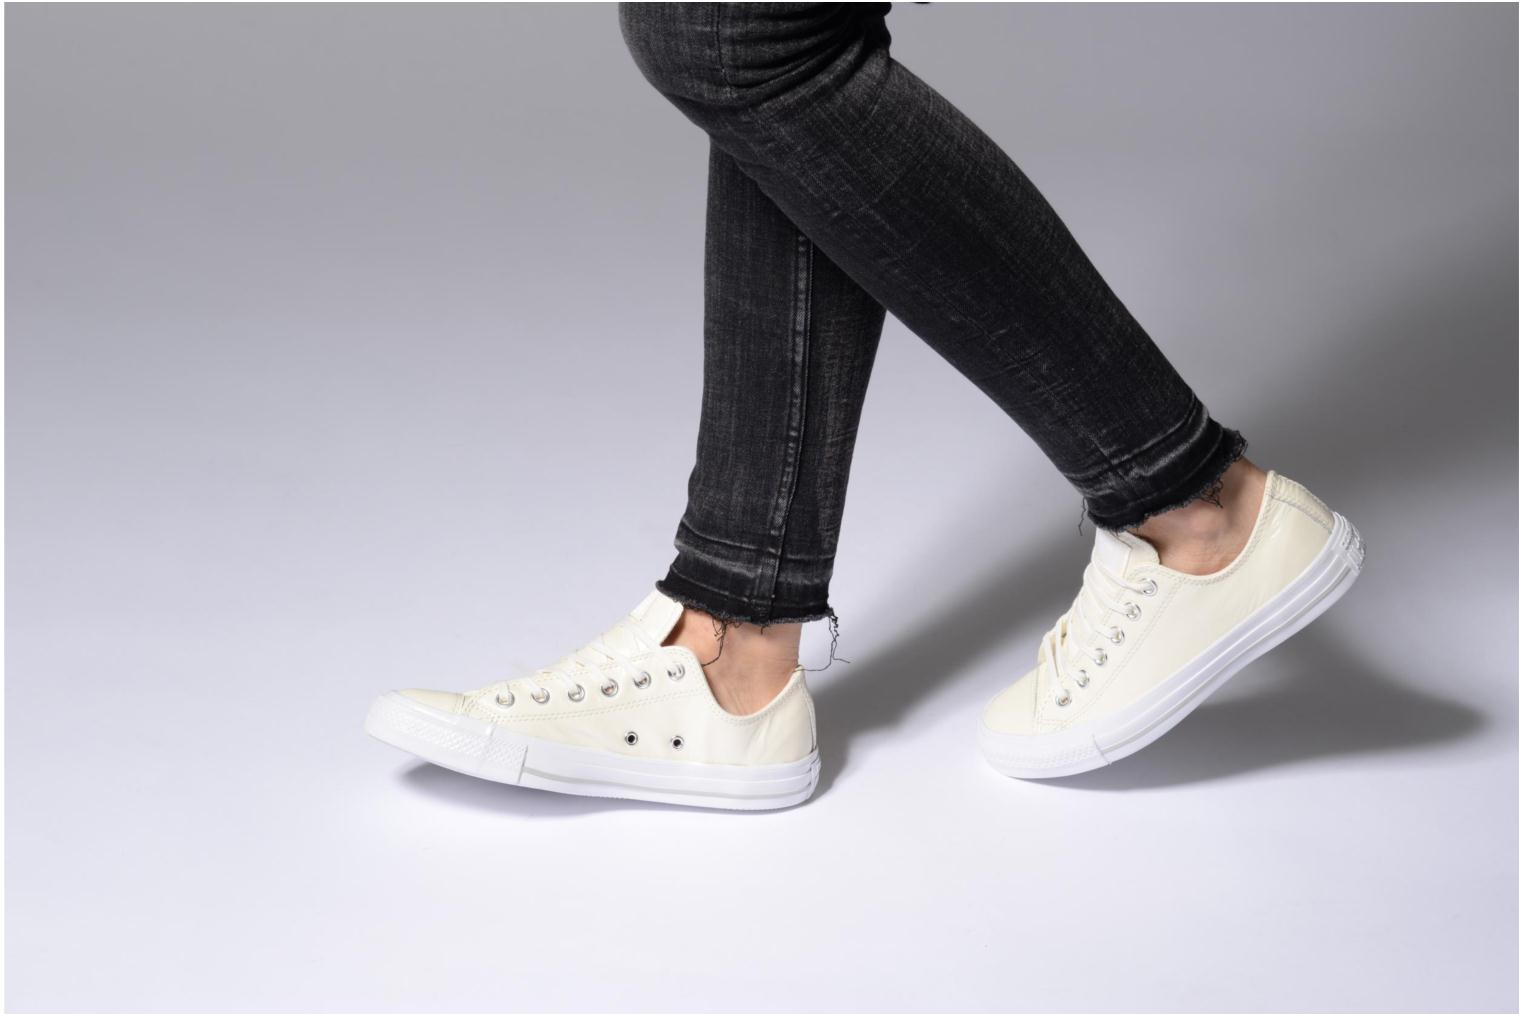 Star Patent Crinkled Zapatos Promocionales Taylor Chuck Converse All A4L3jRqc5